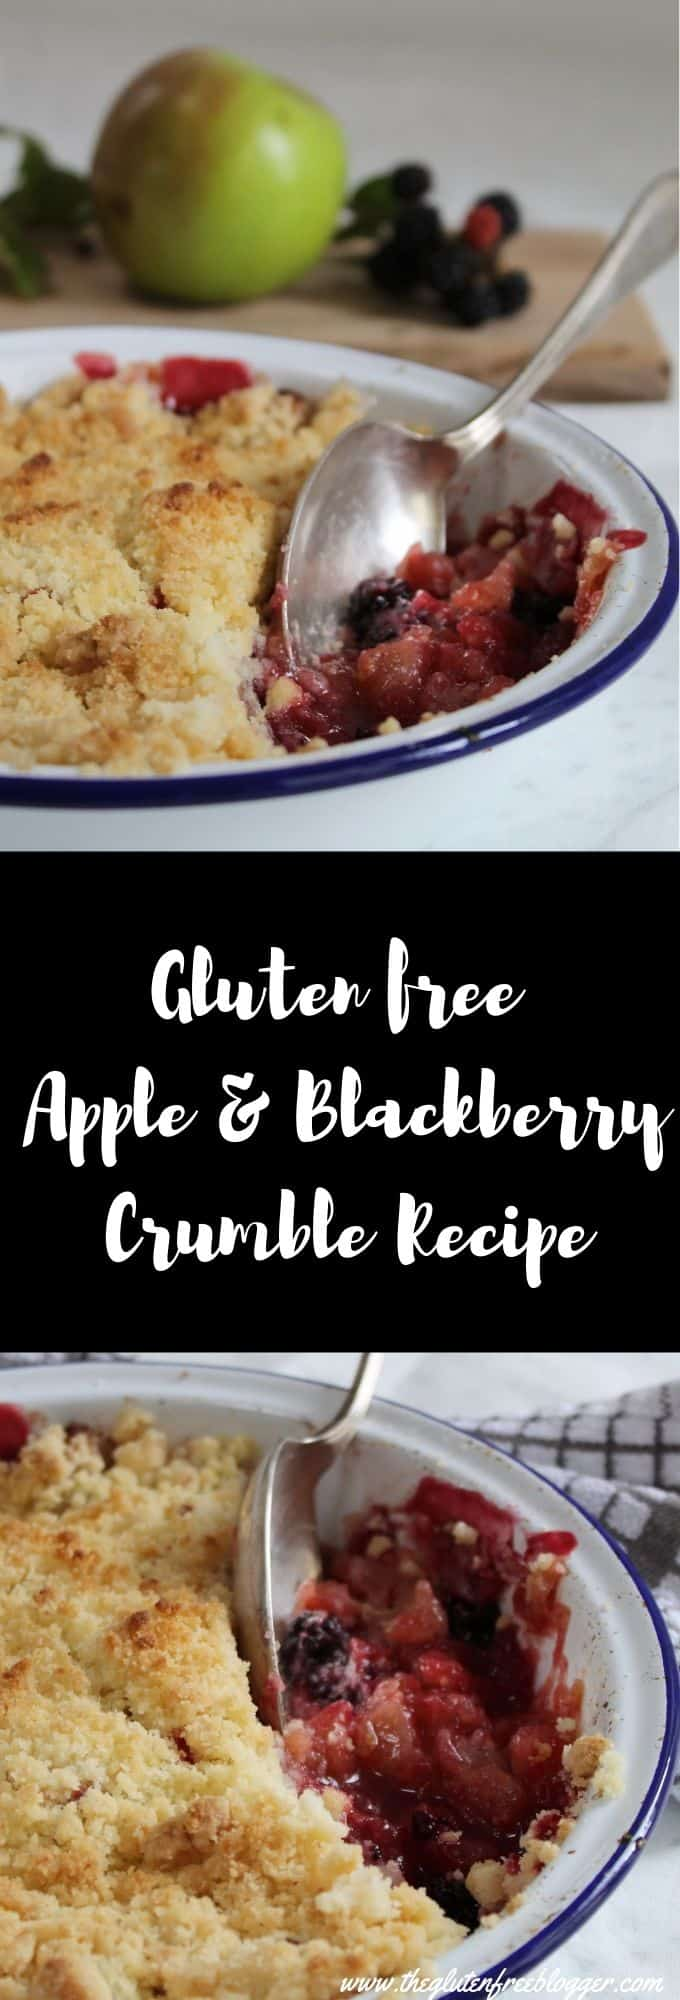 gluten free apple and blackberry crumble recipe - coeliac friendly easy gluten free dessert